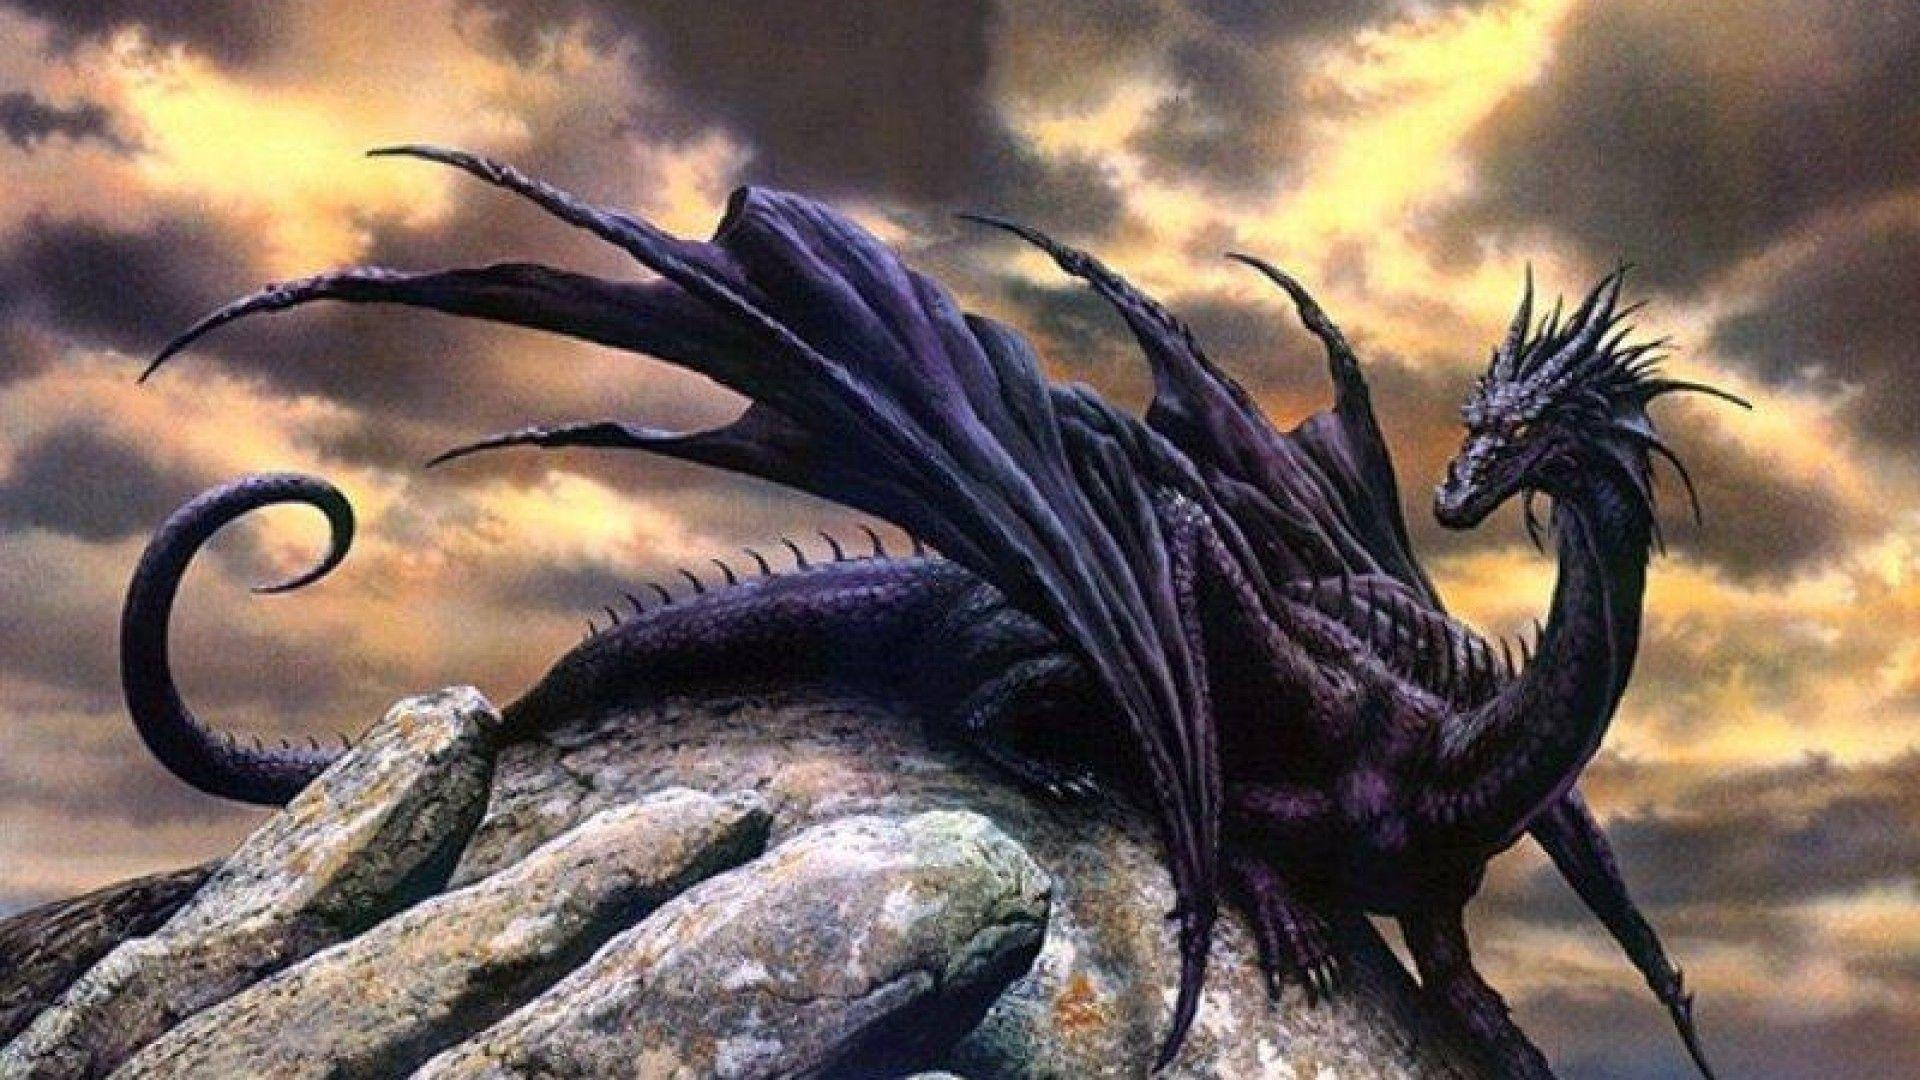 Dragon HD Wallpapers 1080p Ch01d